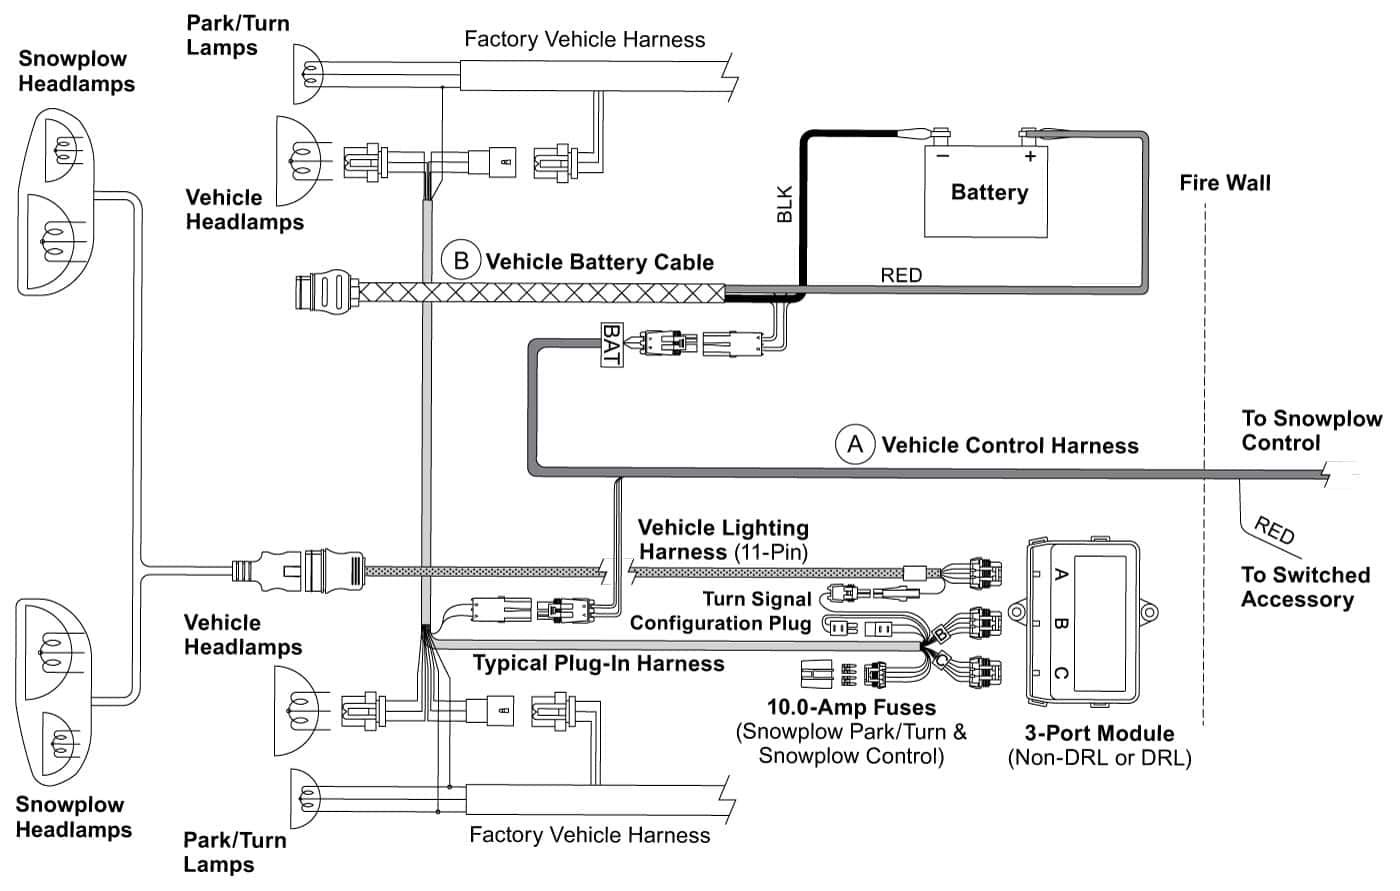 HDX Vehicle-Side Harness (3-Port, 2-Plug) Diagram